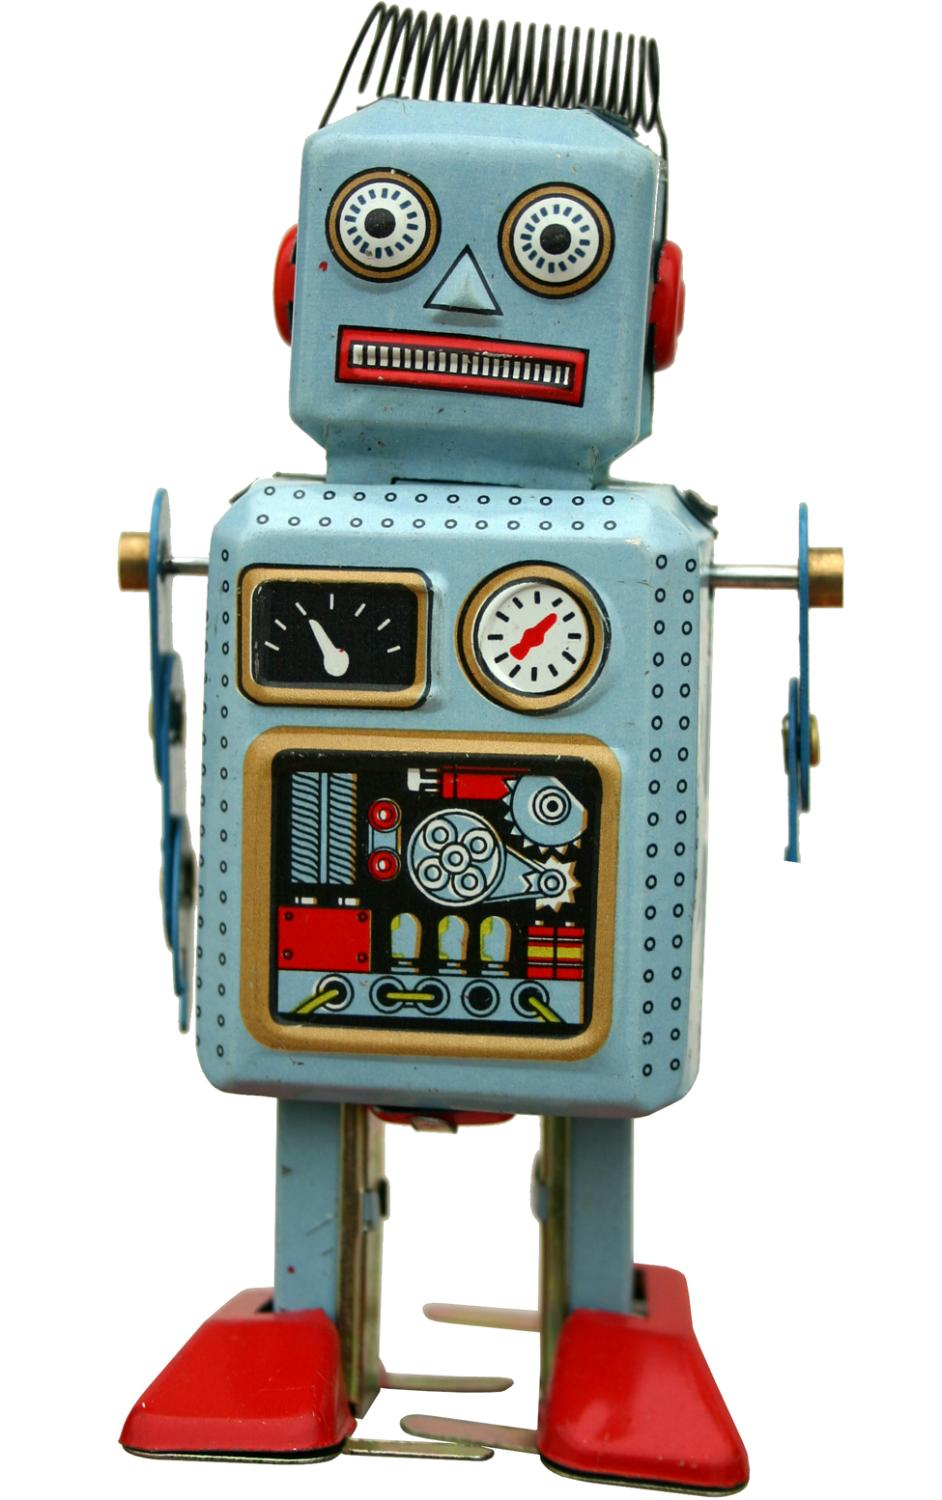 MS294 - Collectible Tin Toy - Robot - 5